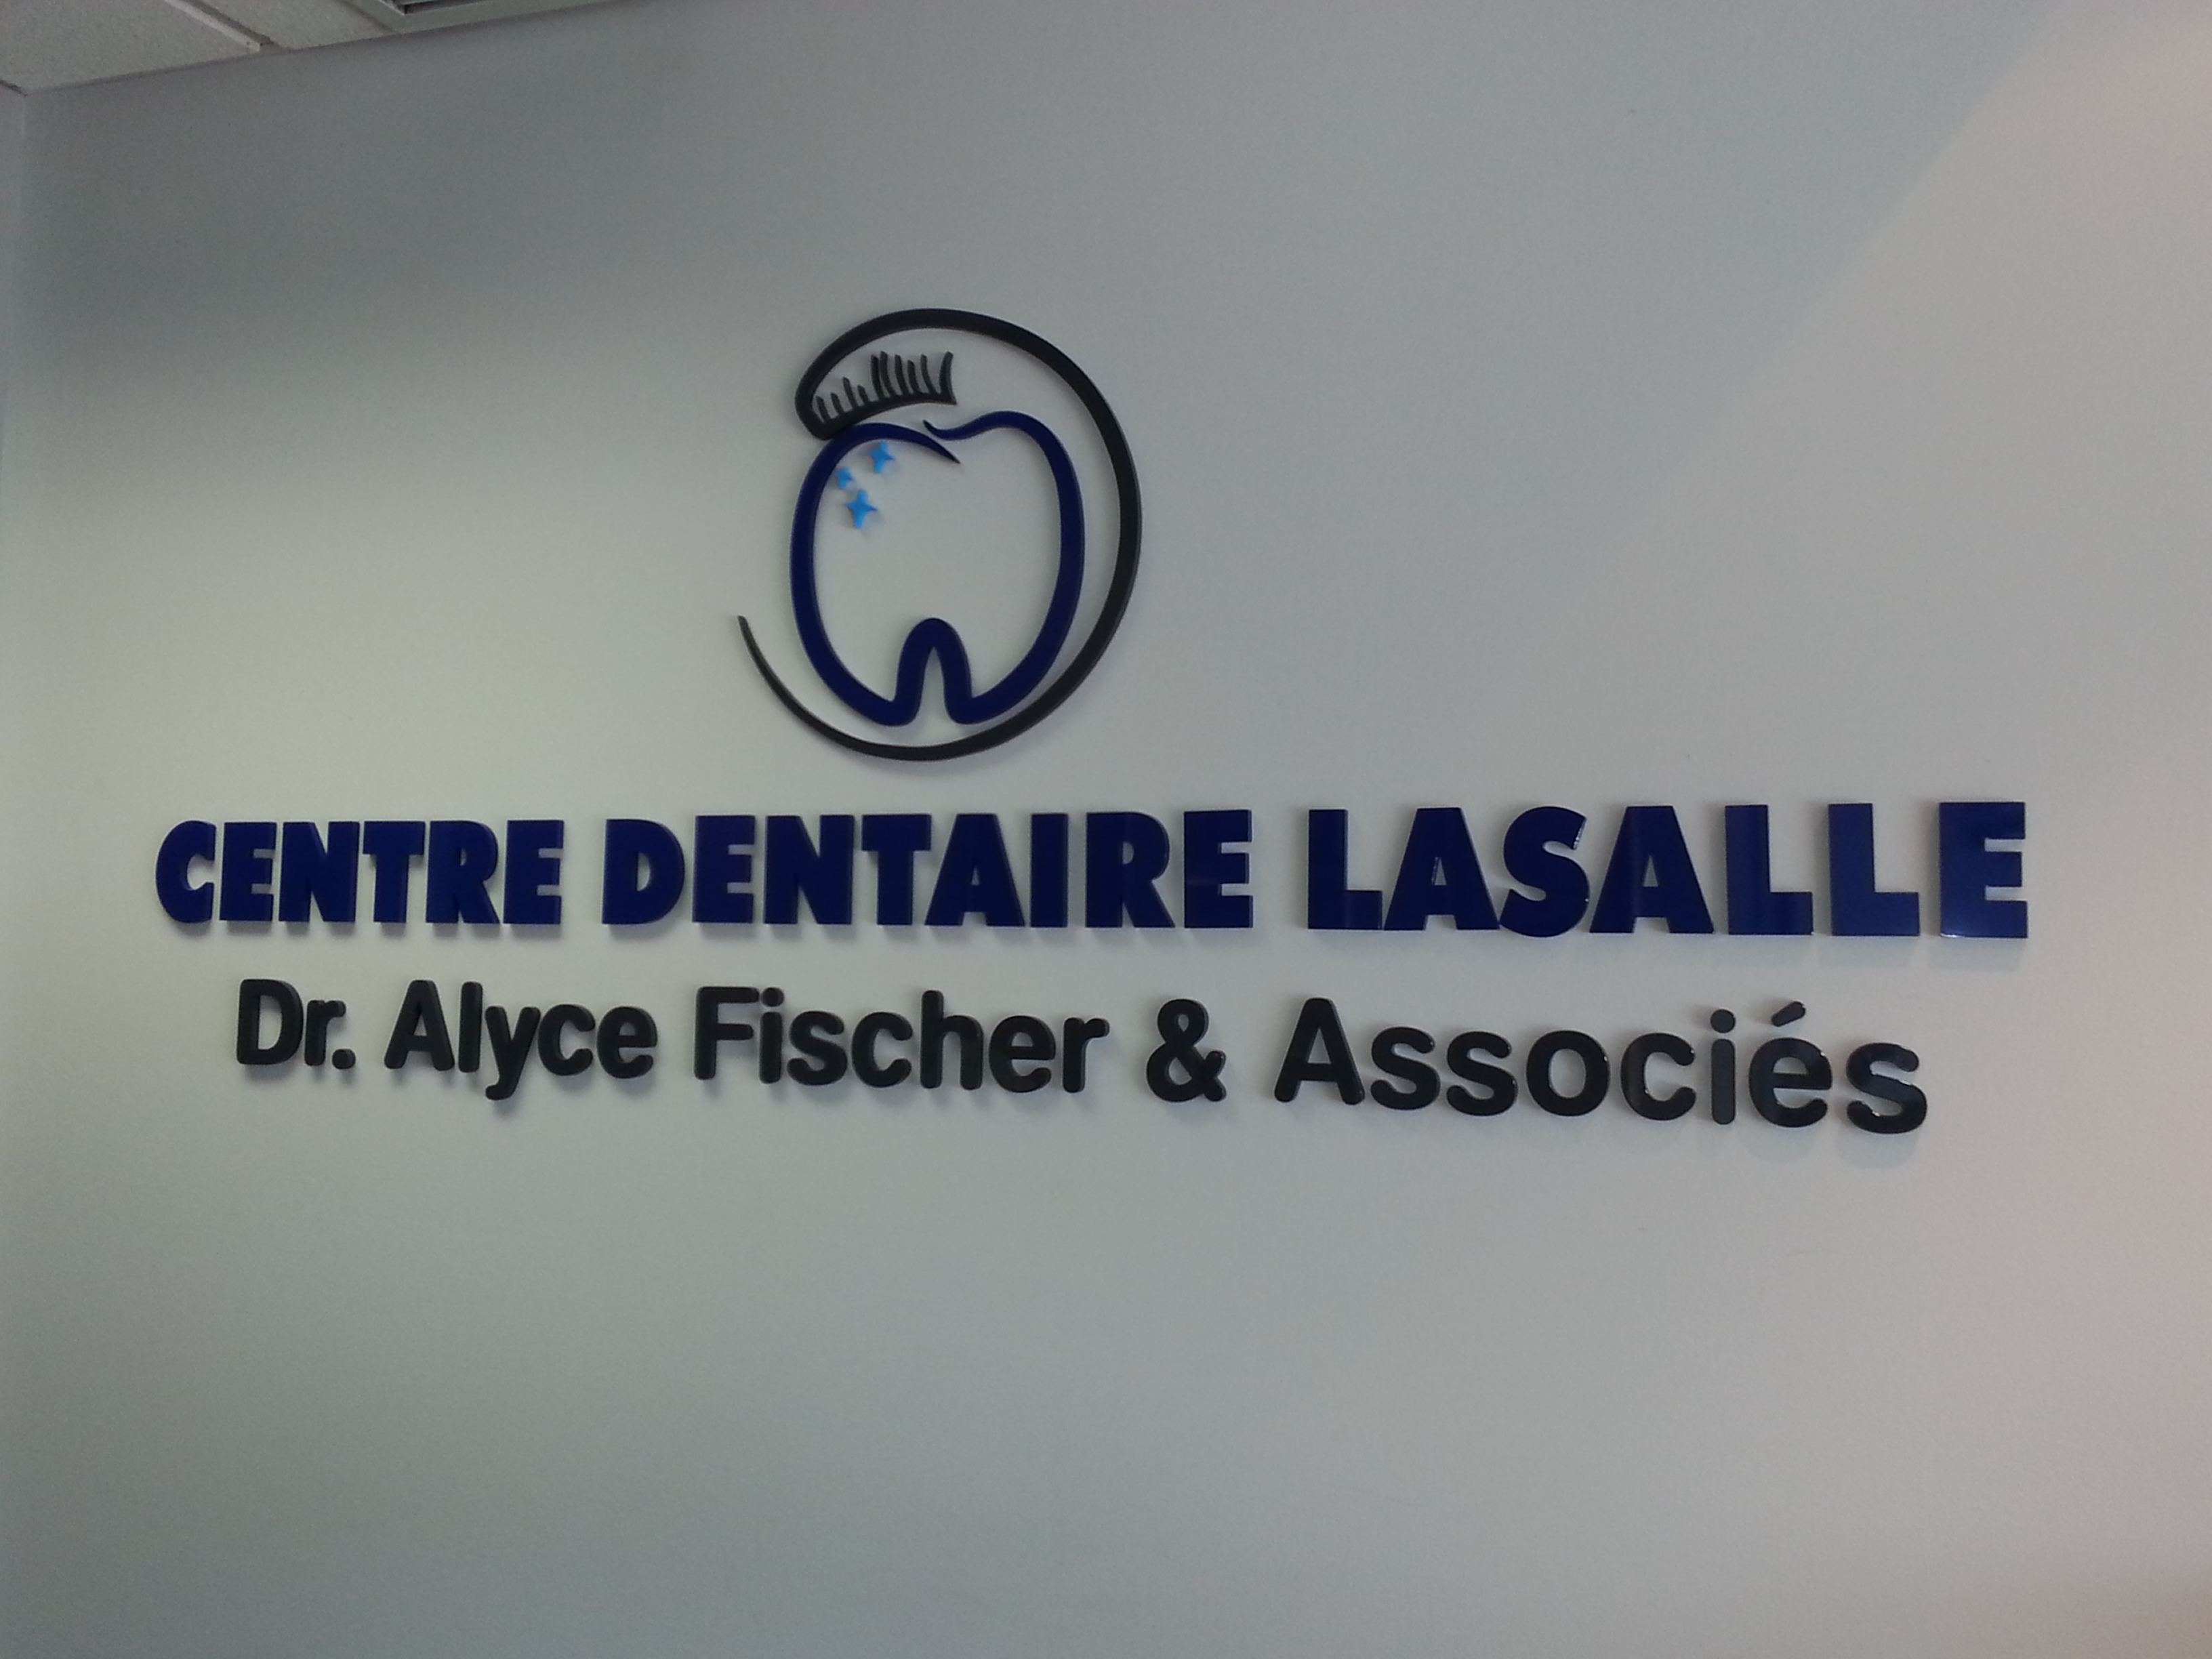 Centre Dentaire Lasalle